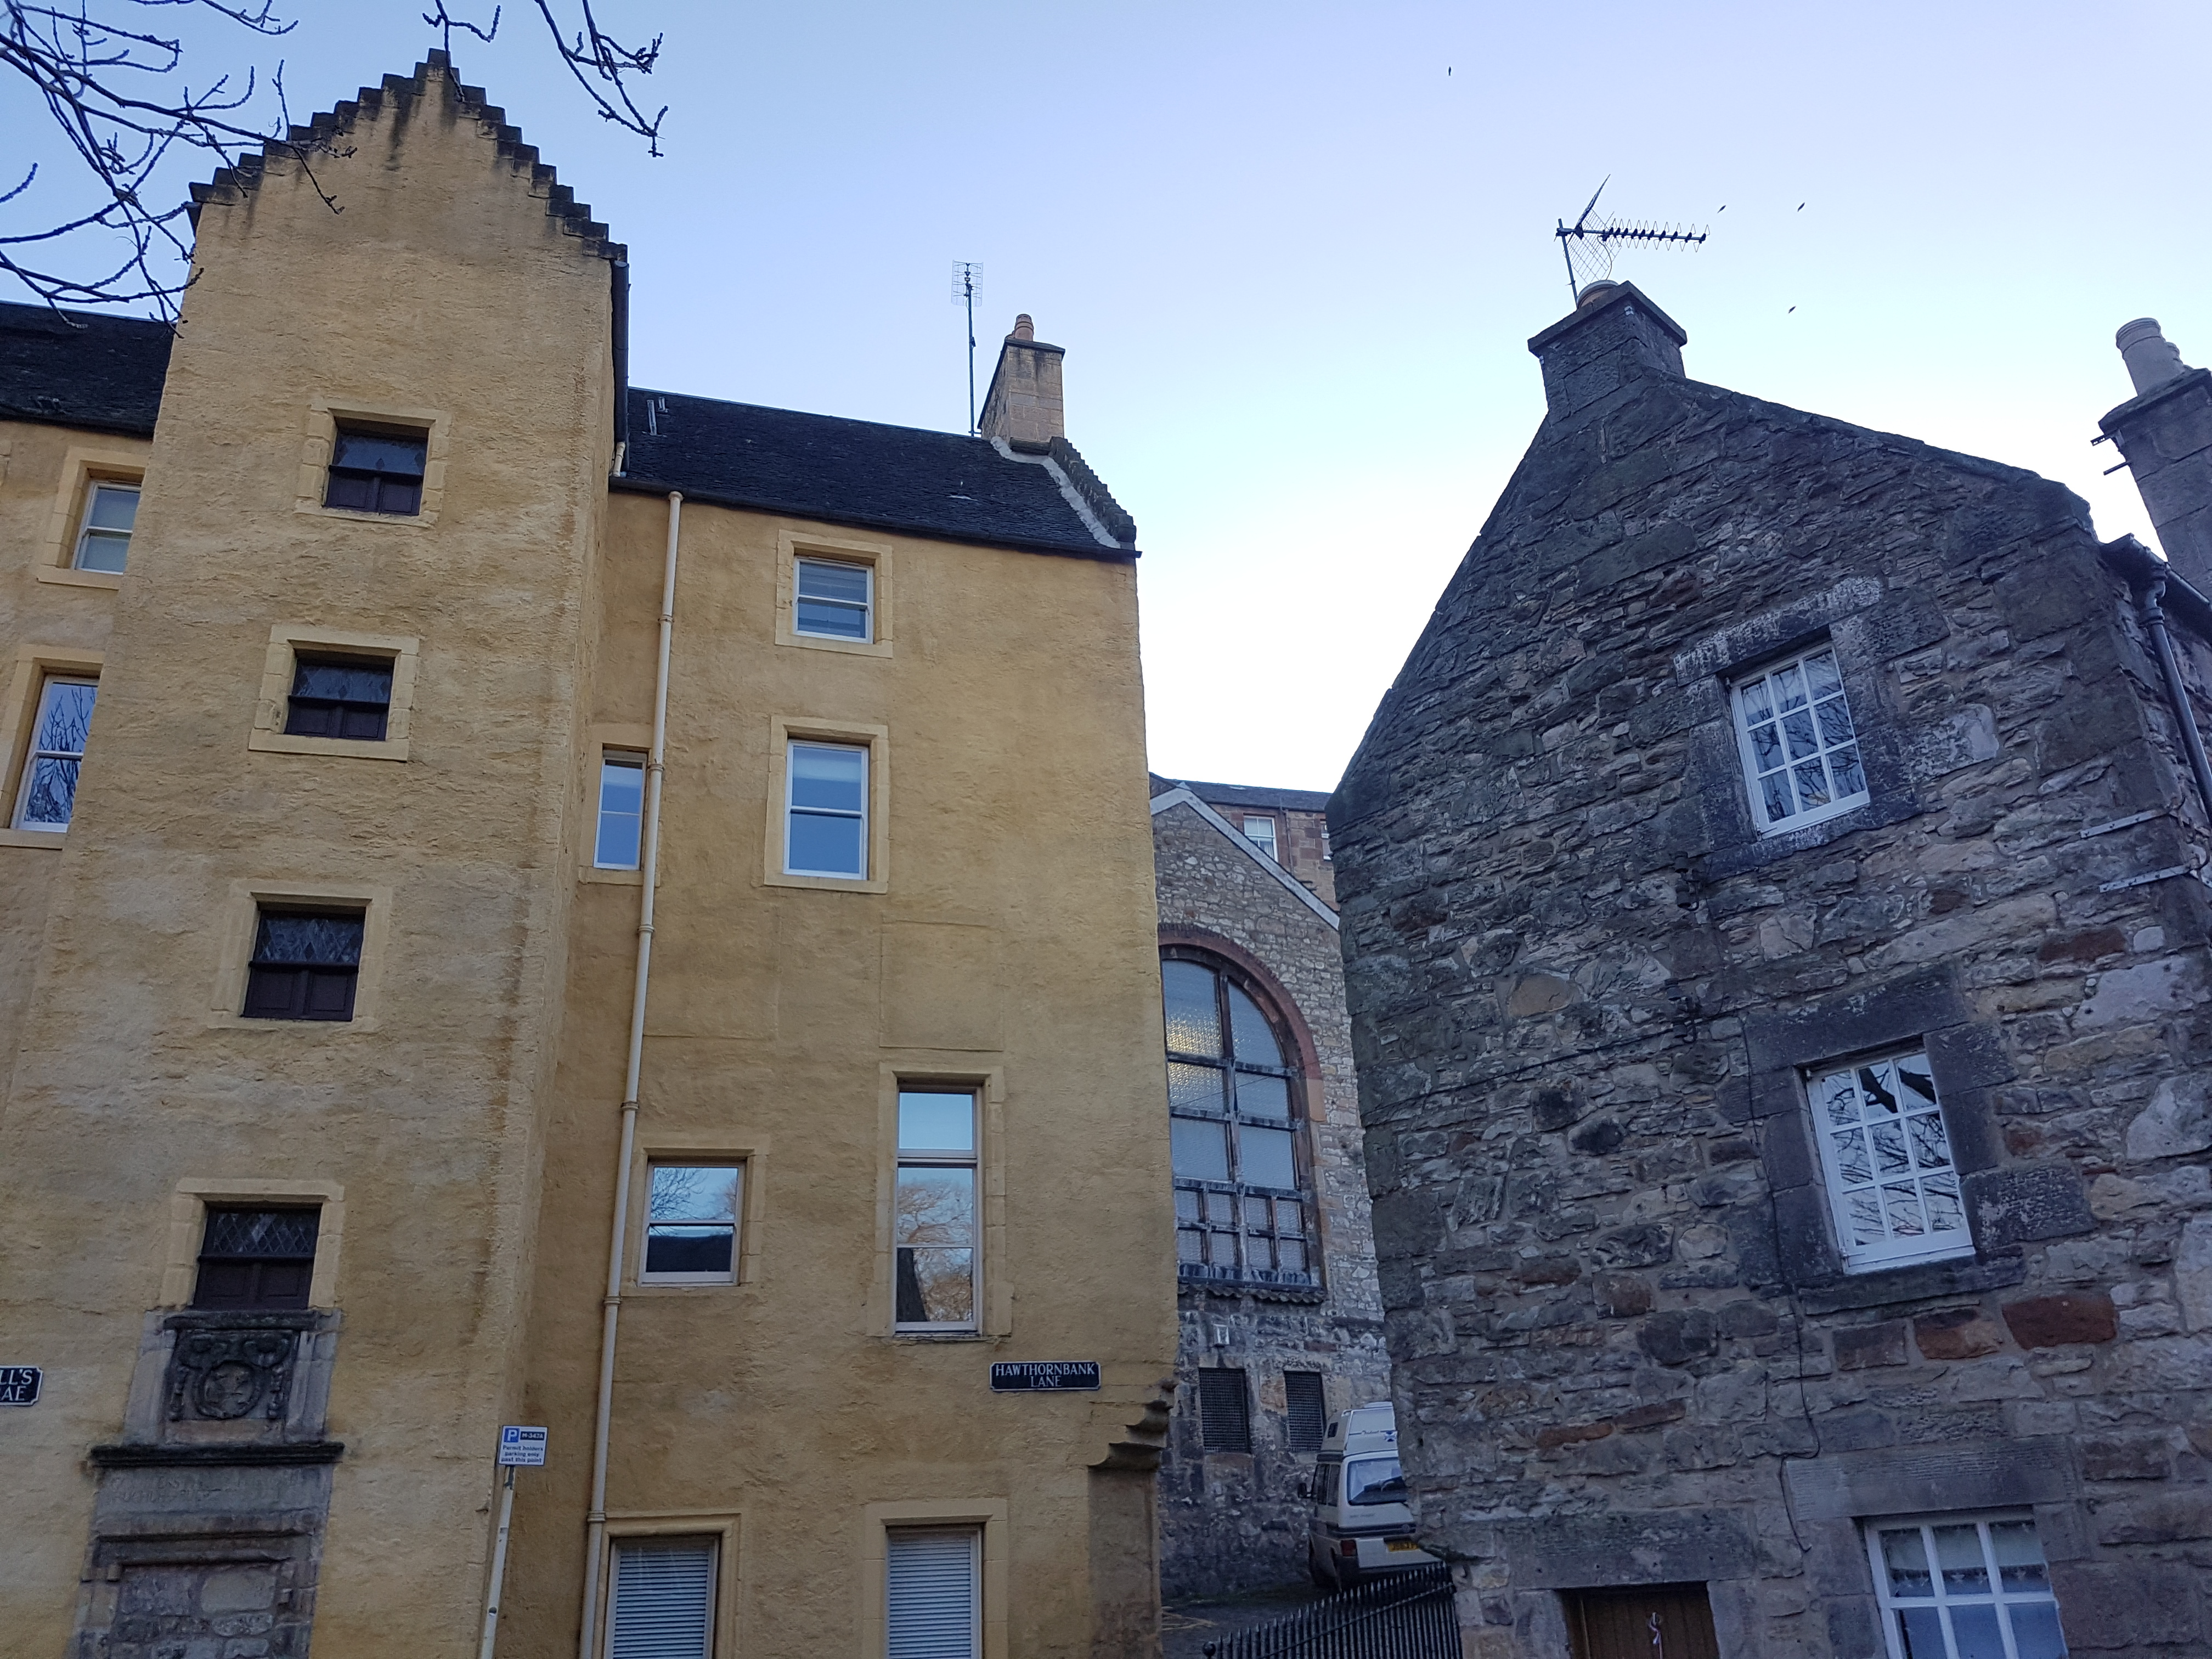 The Old Tolbooth (1675) in yellow